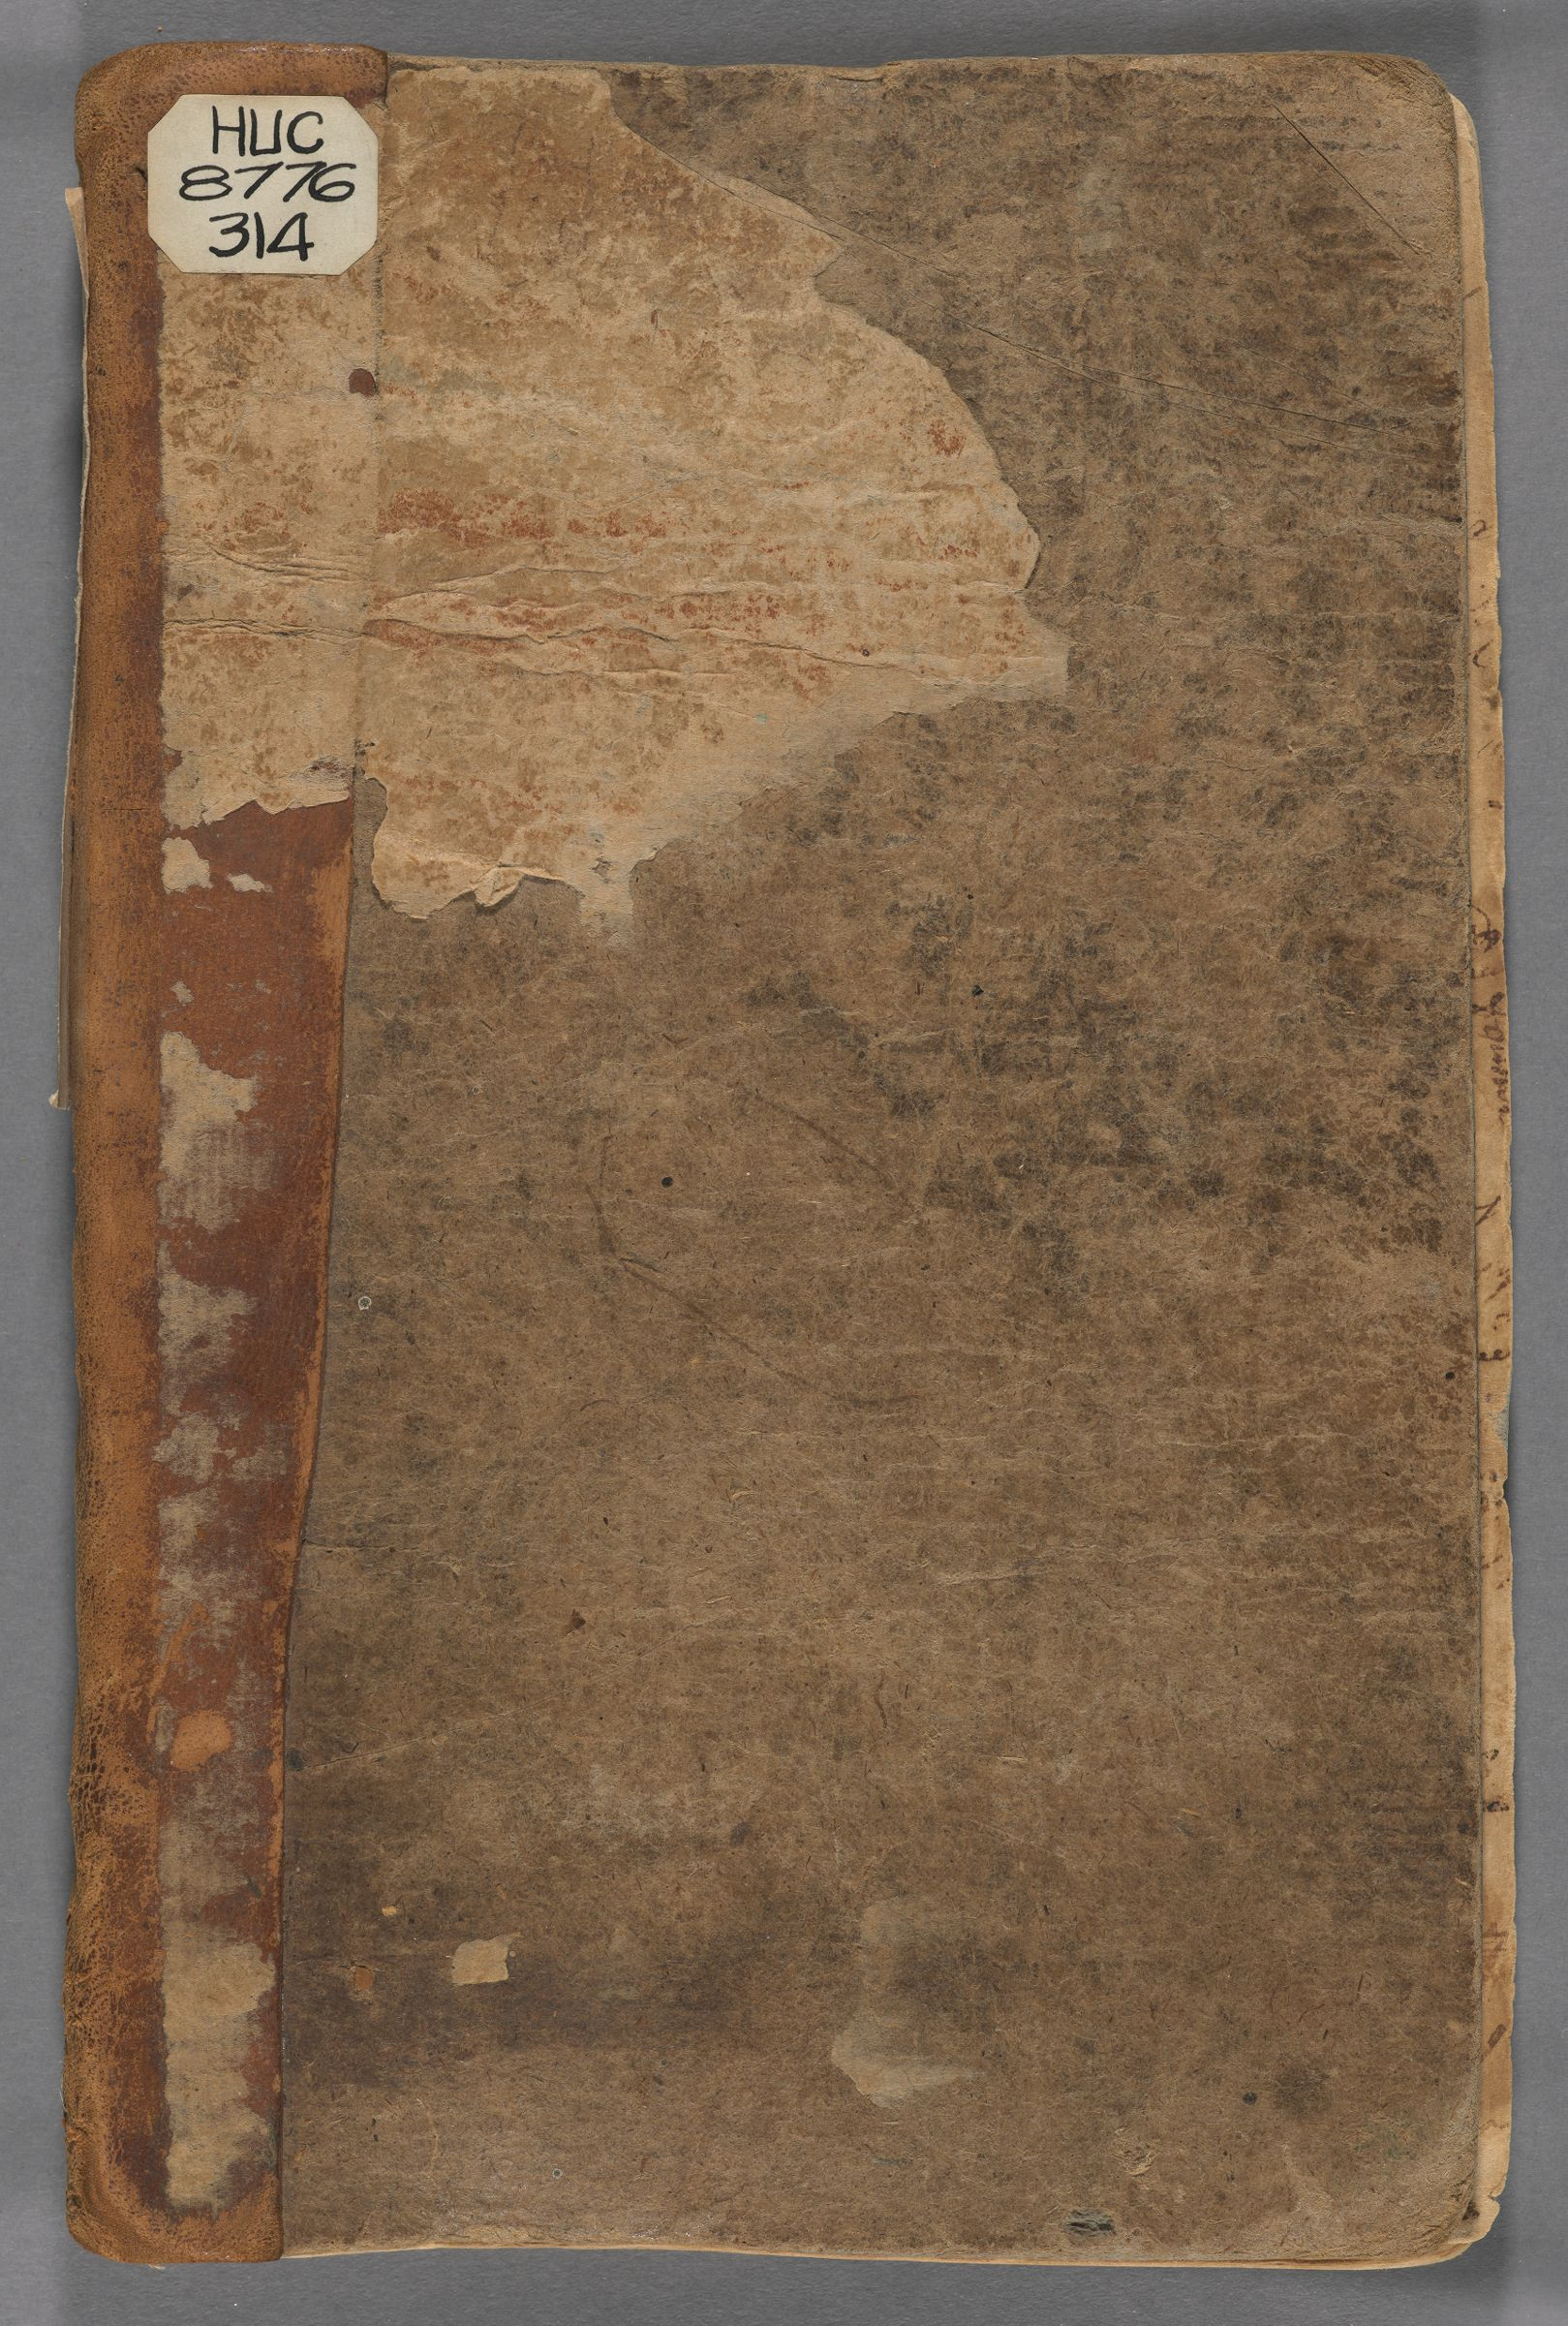 Commonplace book of John Bullard, 1775-1779